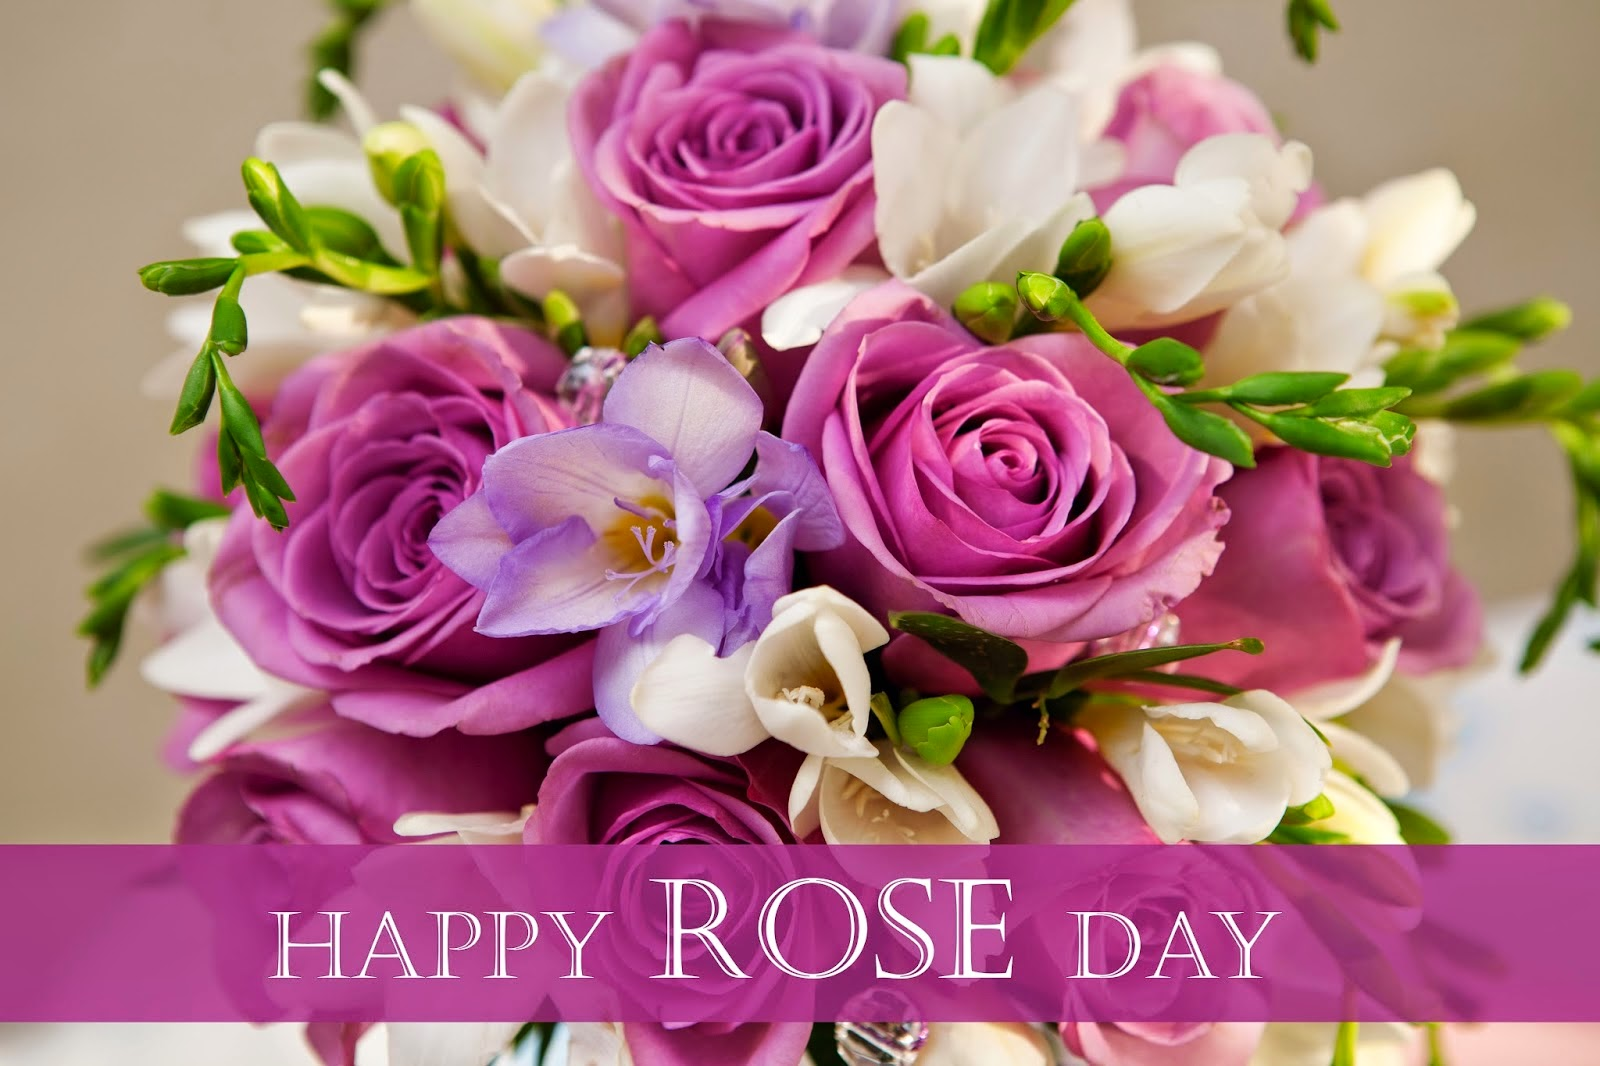 Wallpaper download for whatsapp - Download Rose Day Dp Images For Whatsapp Profile